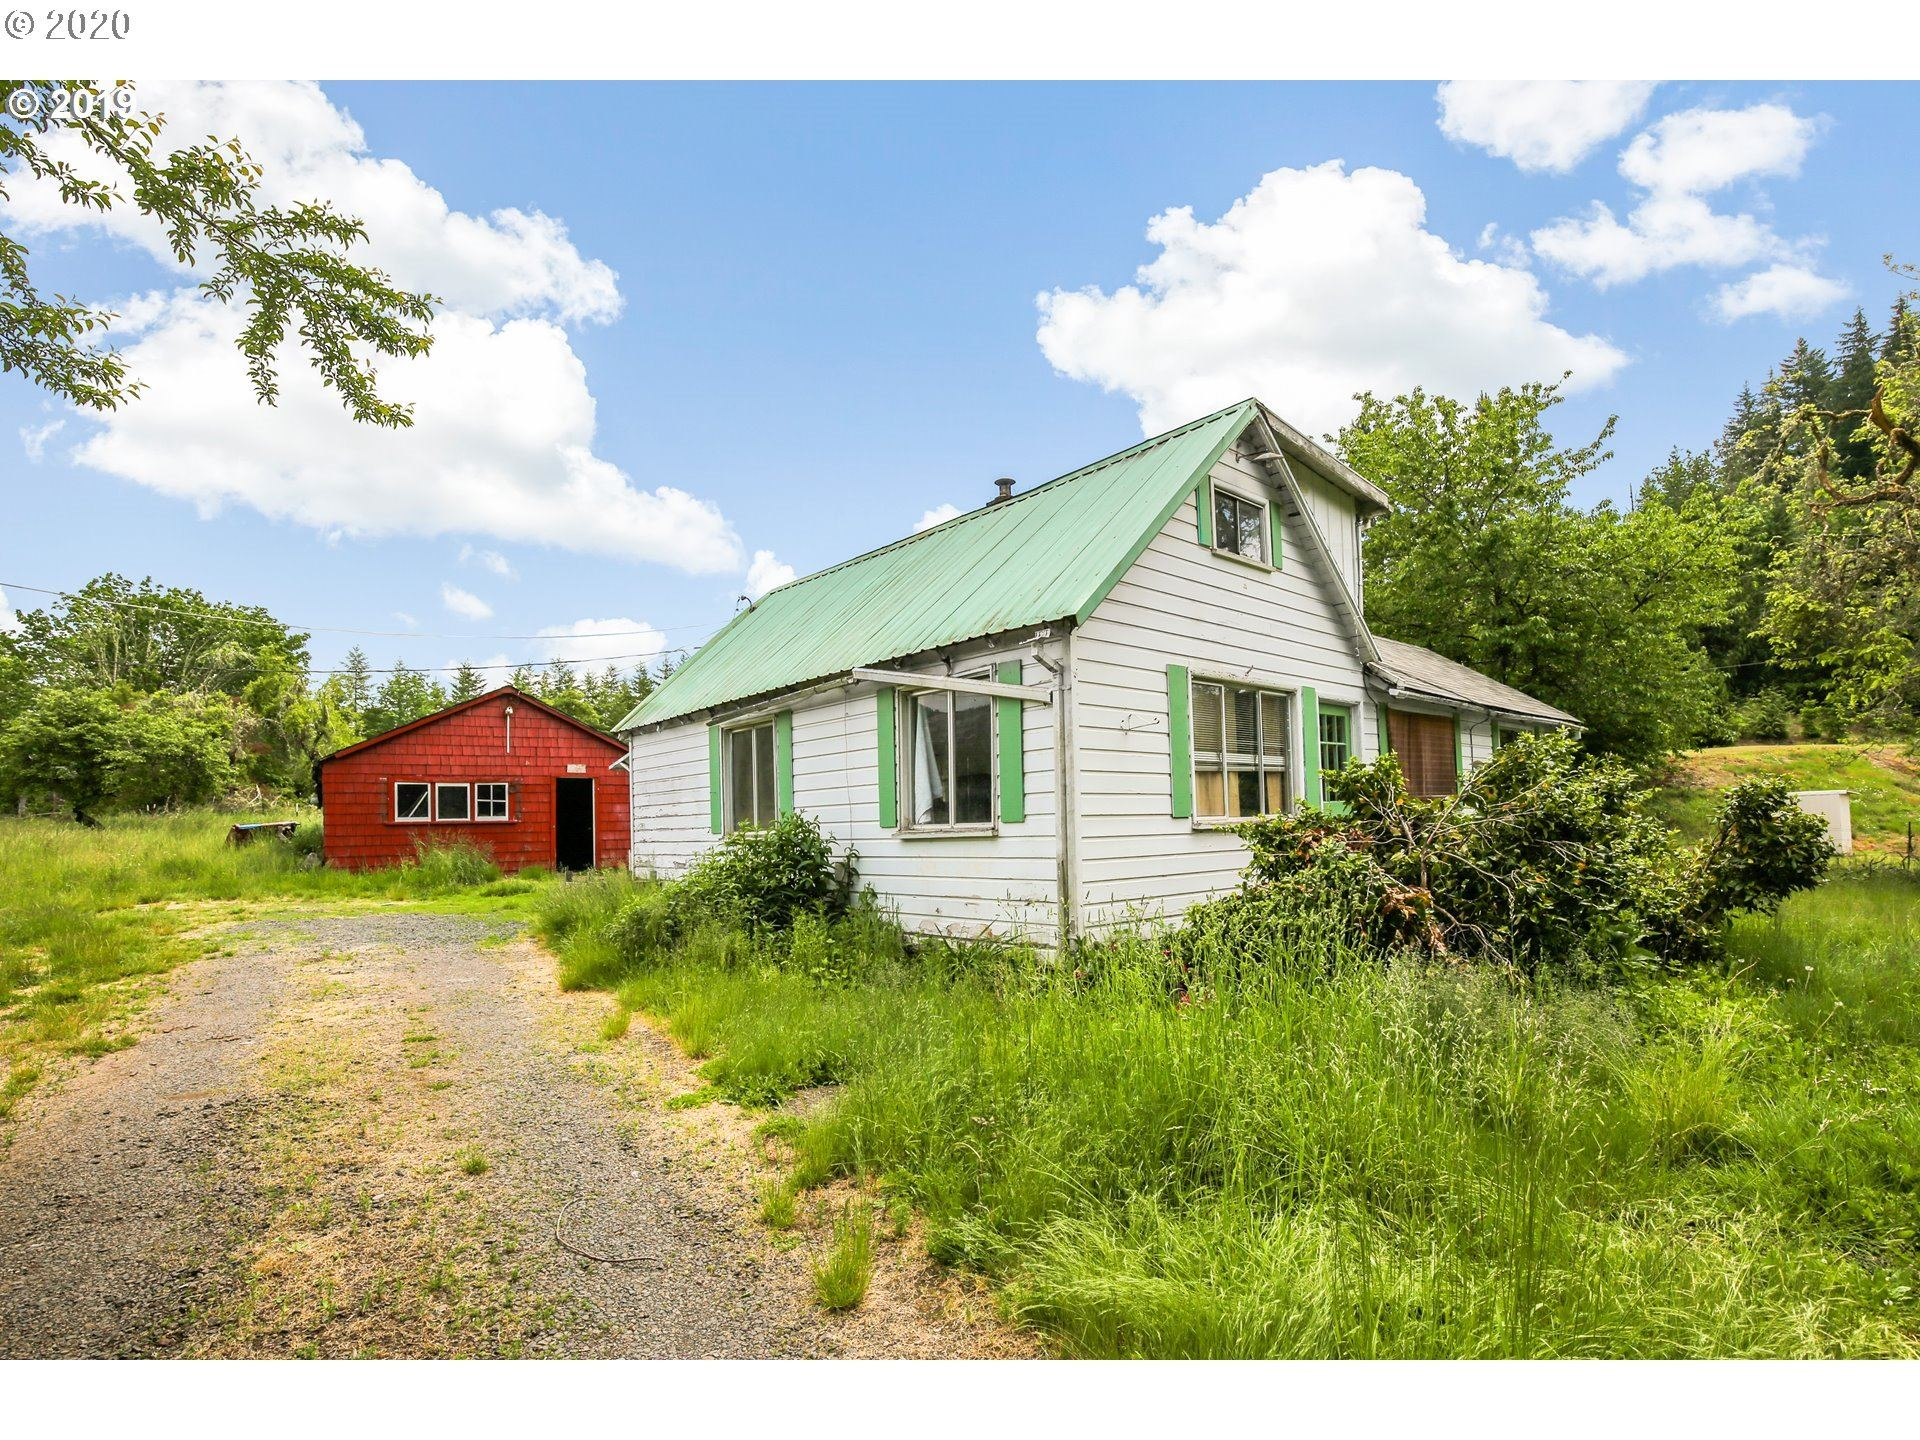 Photo for 39260 OLD GIUSTINA MILL RD, Dexter, OR 97431 (MLS # 20562129)